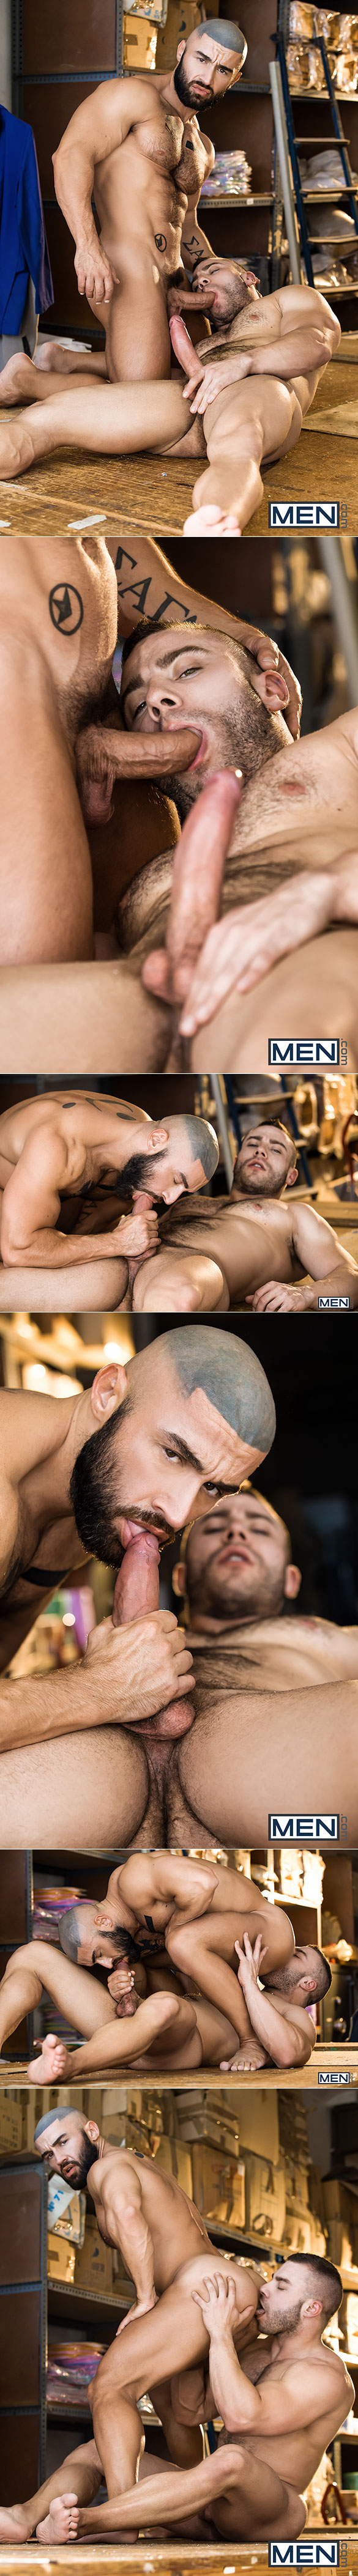 "Men.com: François Sagat rides Diego Reyes' thick cock in ""Heart's Desire"""